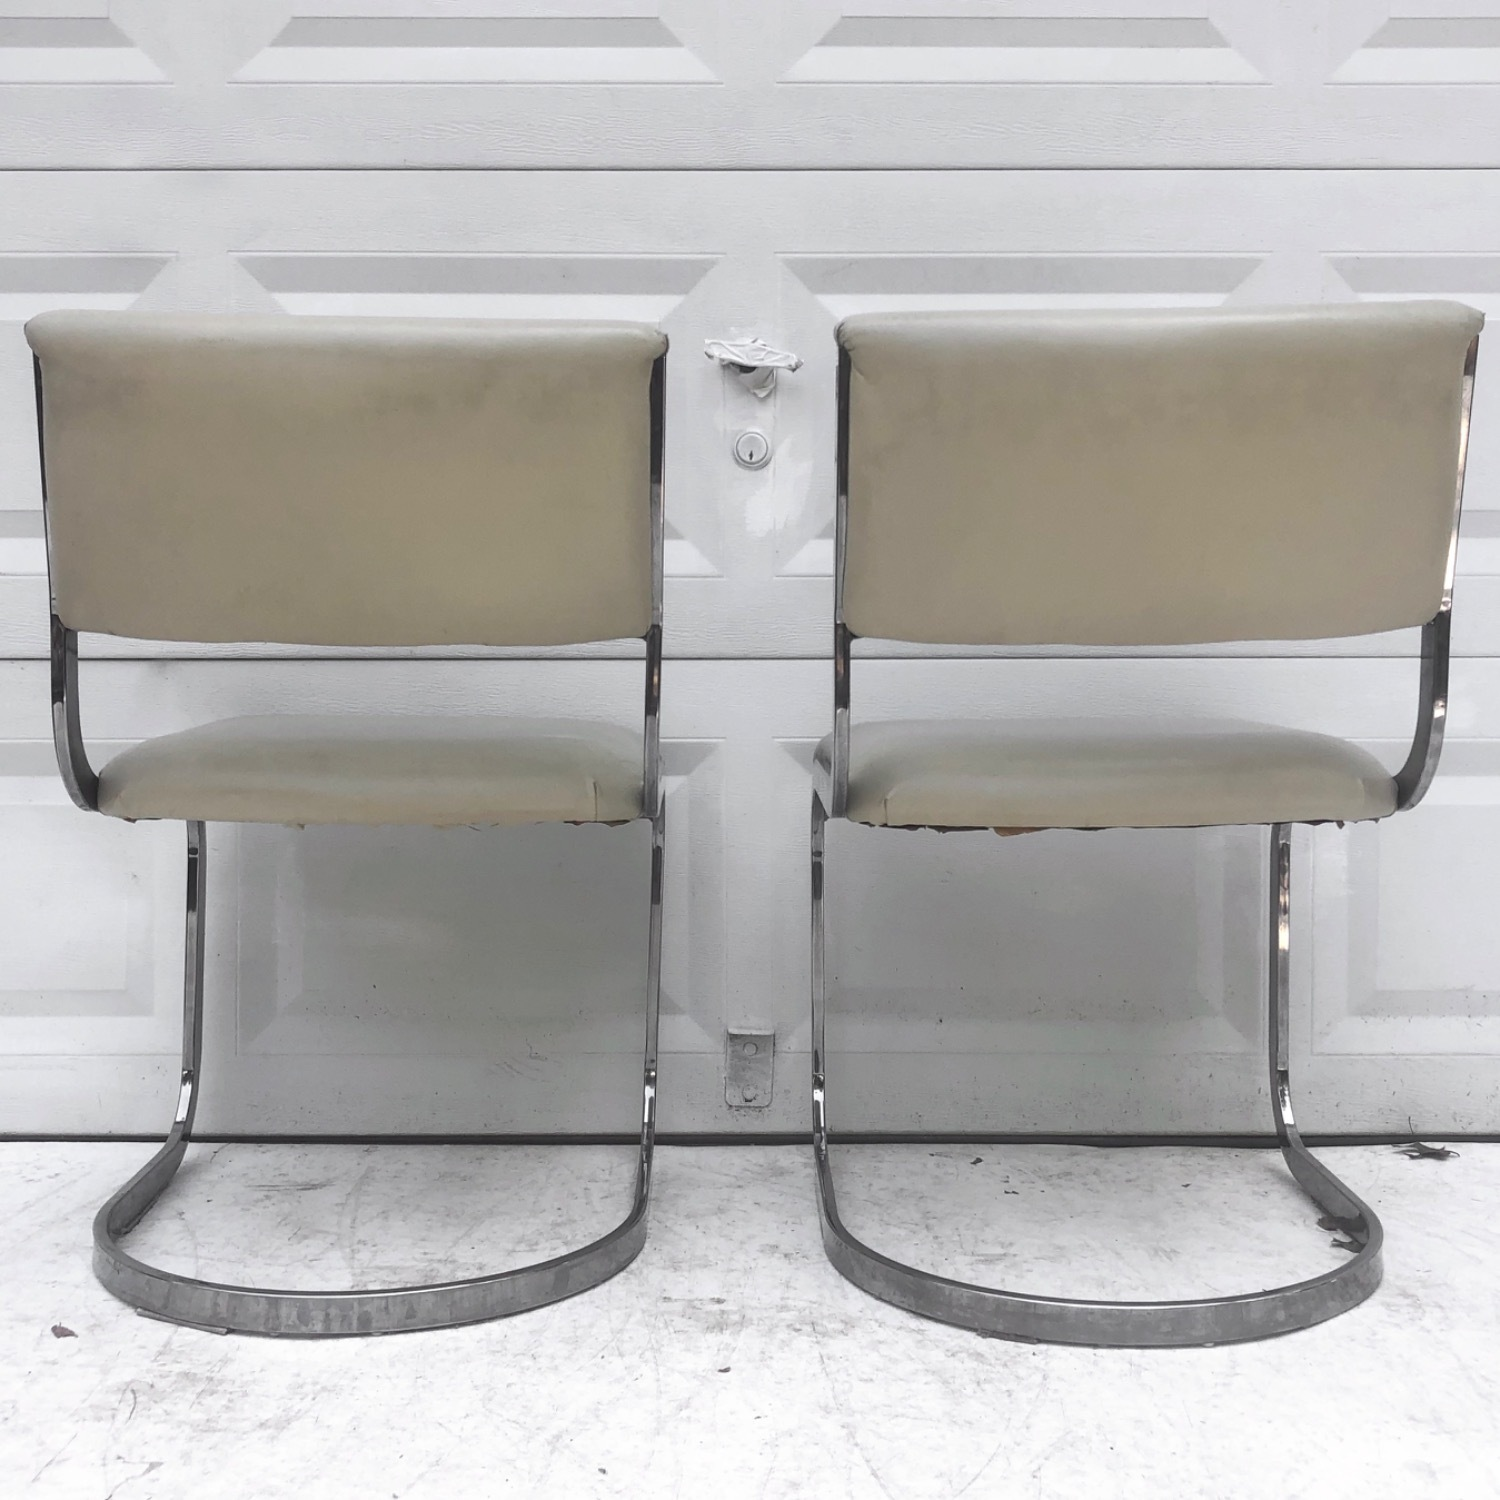 Vintage Modern Dining Chairs Set of 8 - image-15